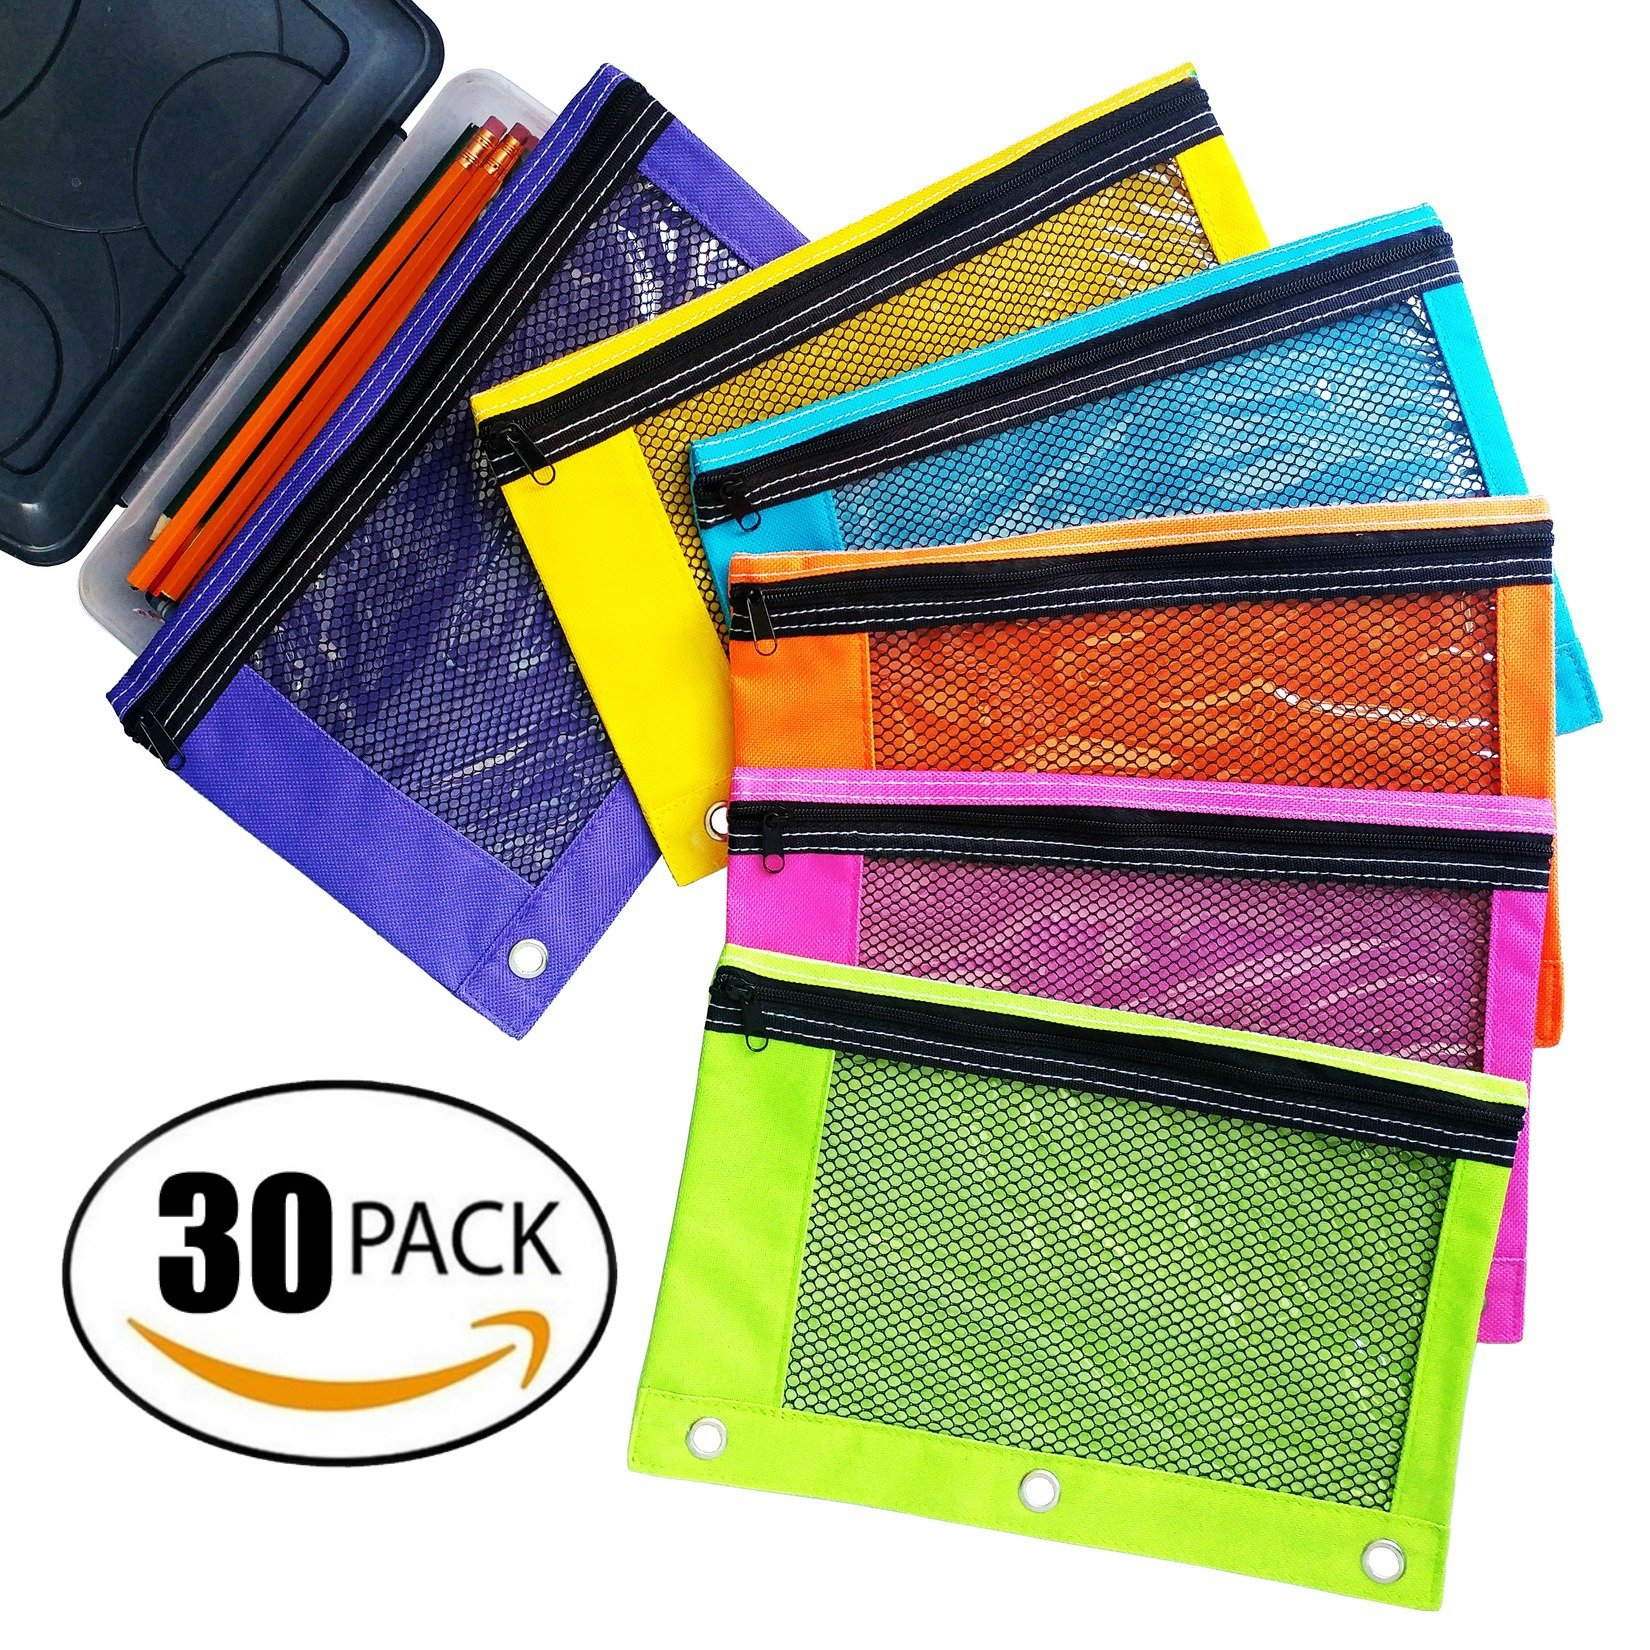 Zippered Pencil Pouches by School Smarts - 3 Ring Pencil Case with Mesh and plastic window. Huge 30 Pack with a Variation of 6 Bright Colors.